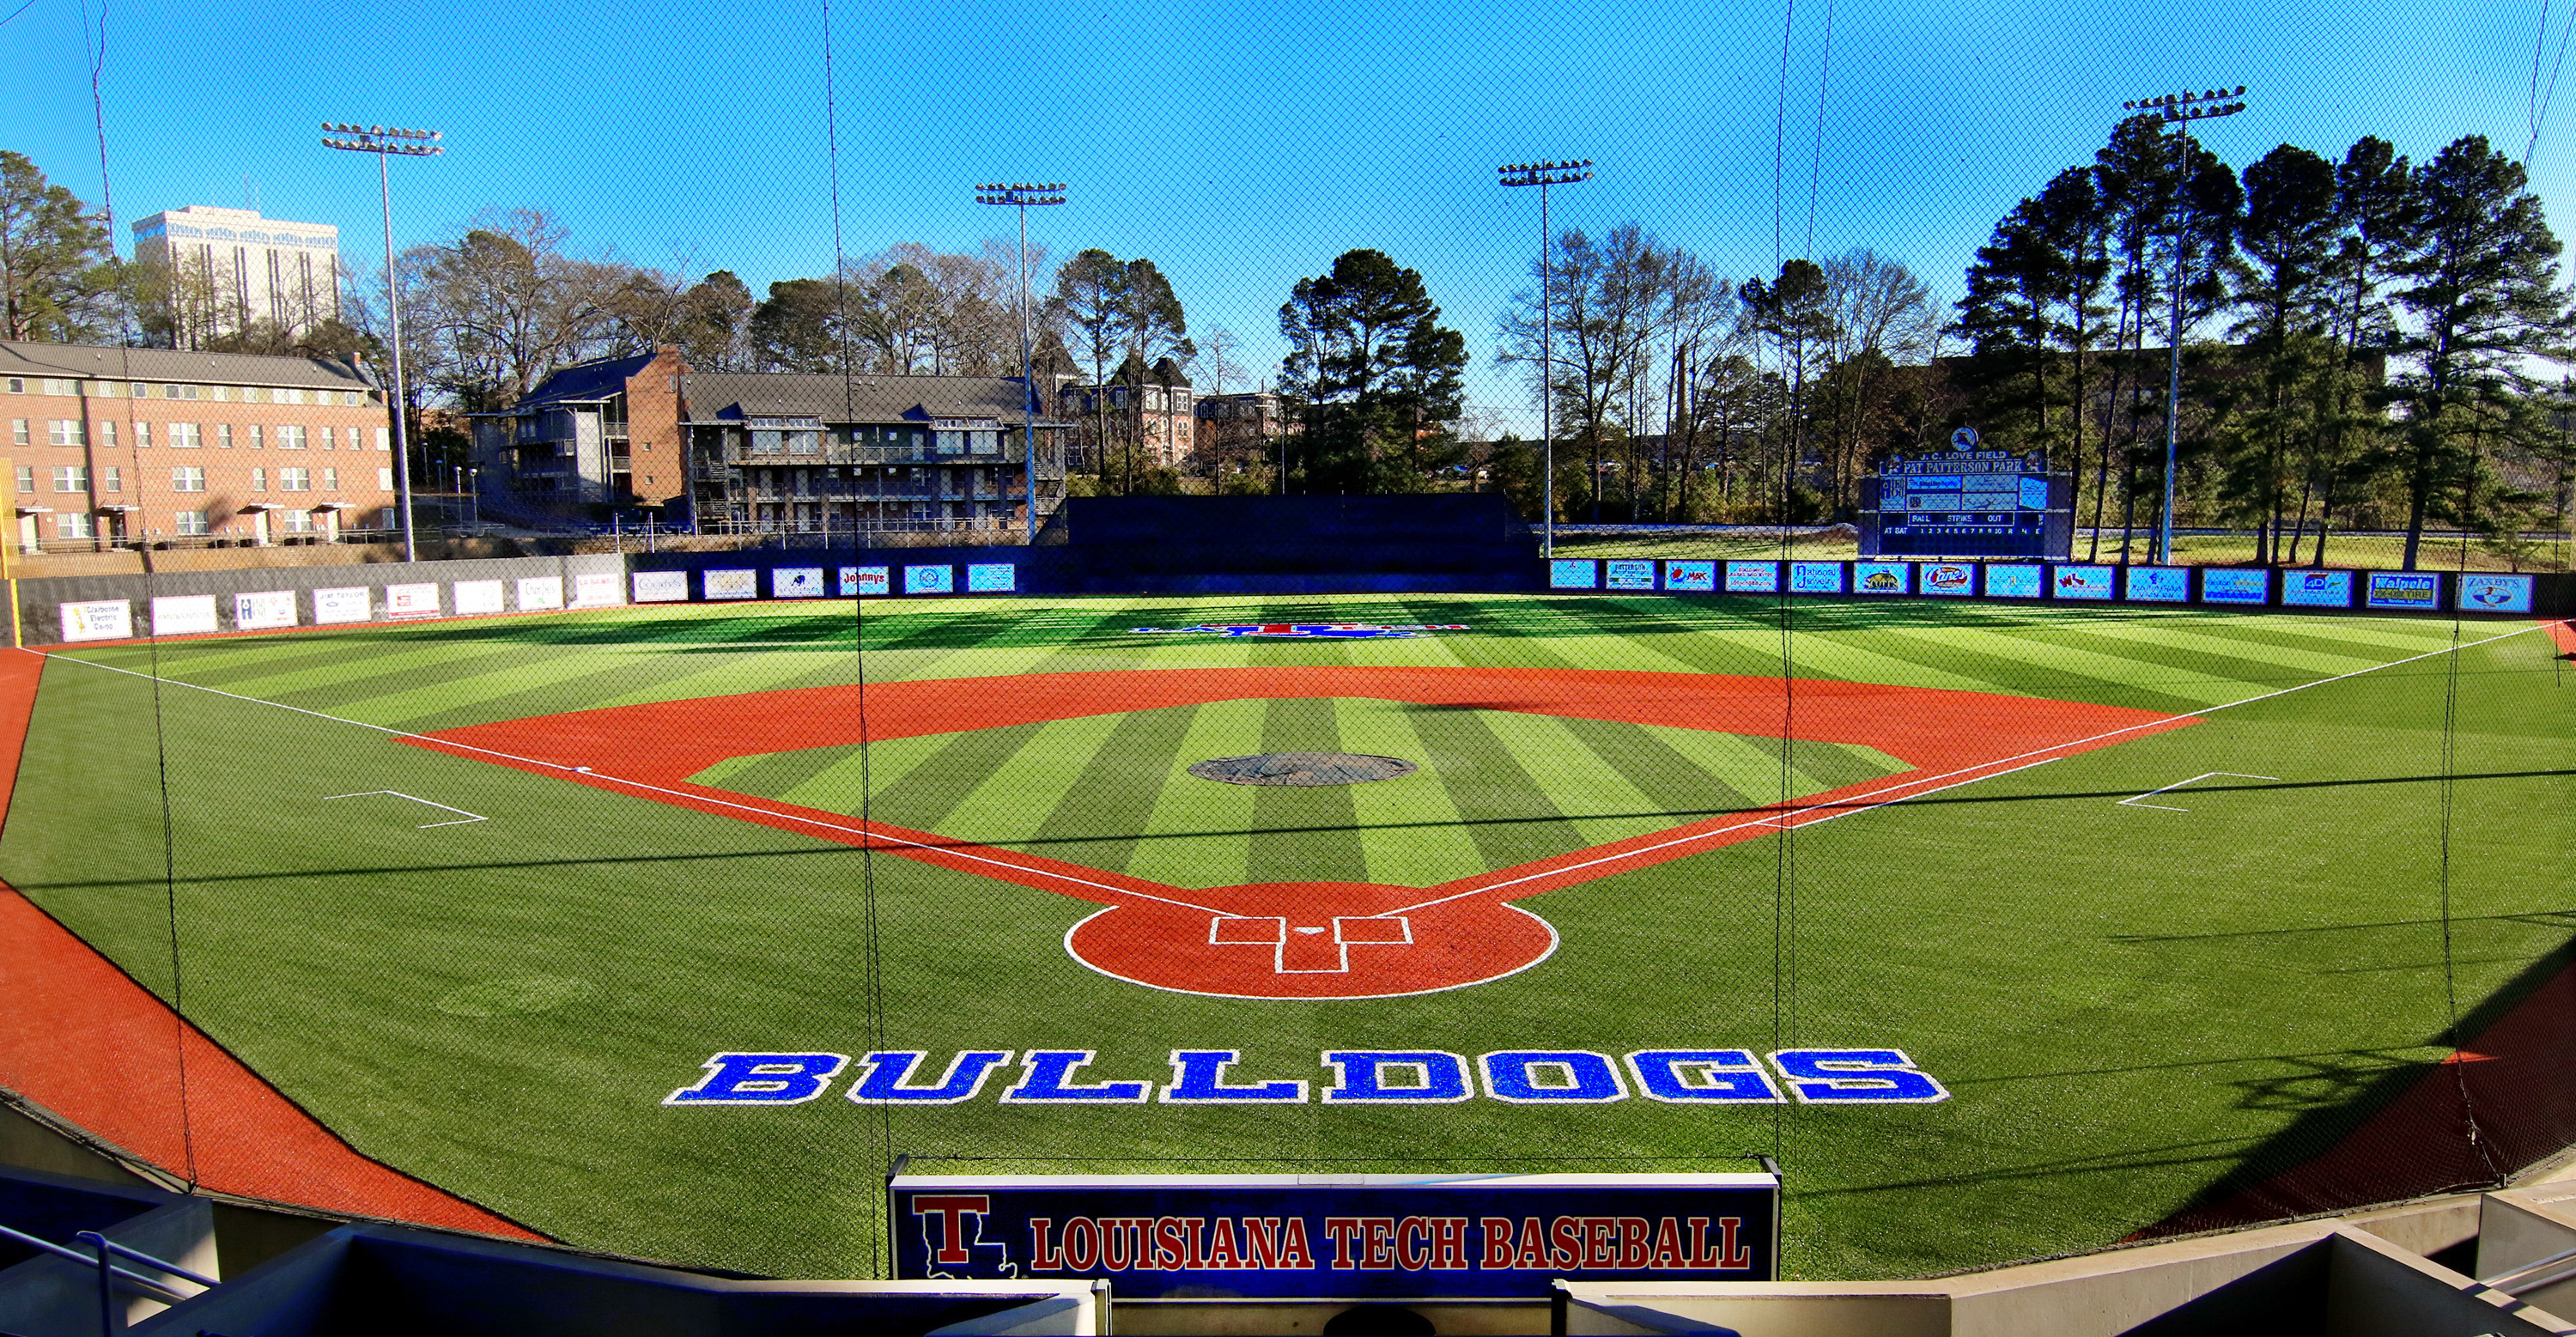 La Tech University >> J C Love Field At Pat Patterson Park La Tech Athletics